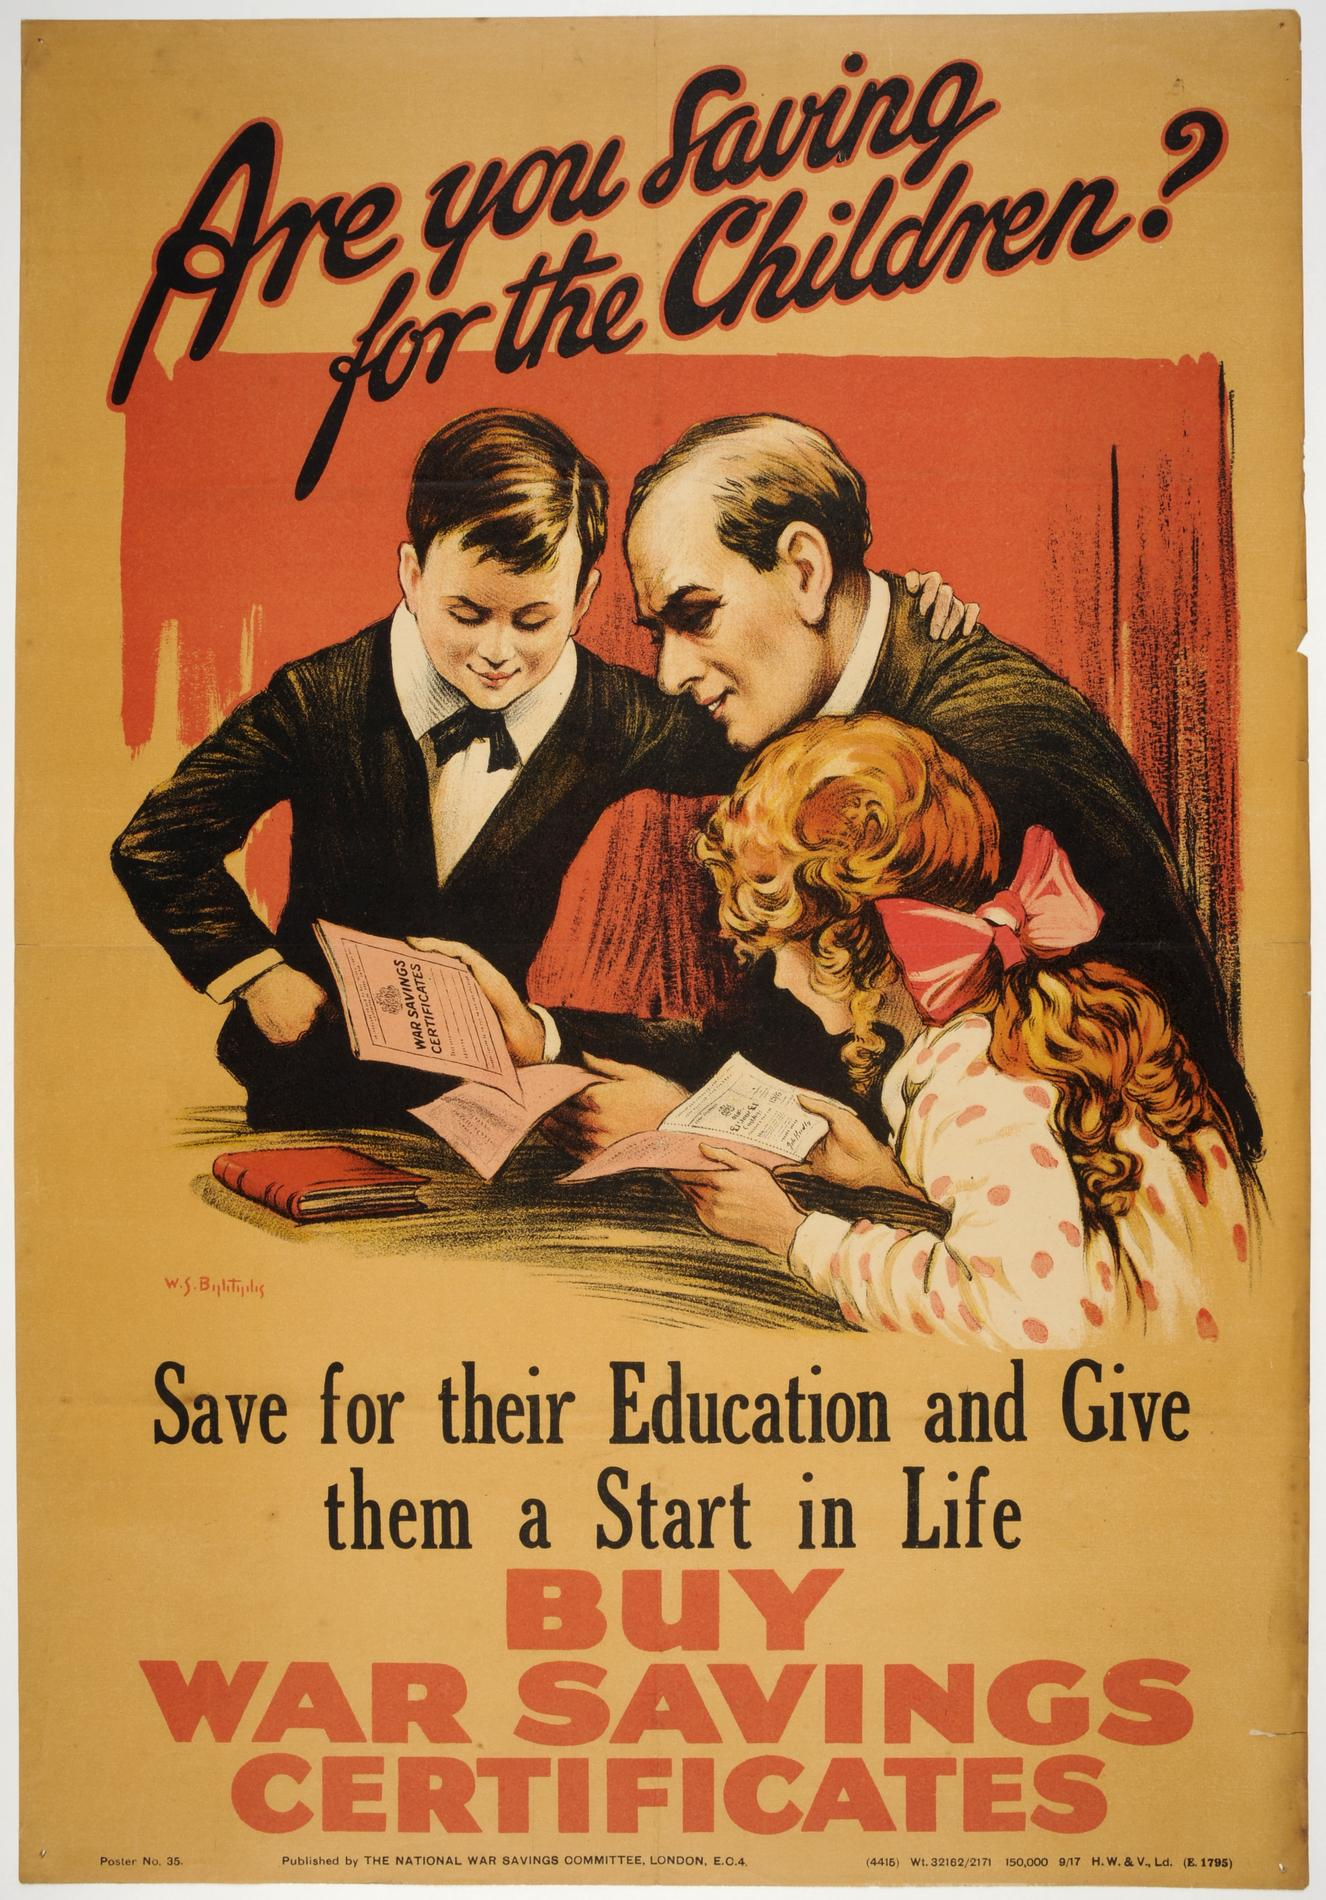 'Are you saving for the children?... Buy War Savings Certificates' (Poster)